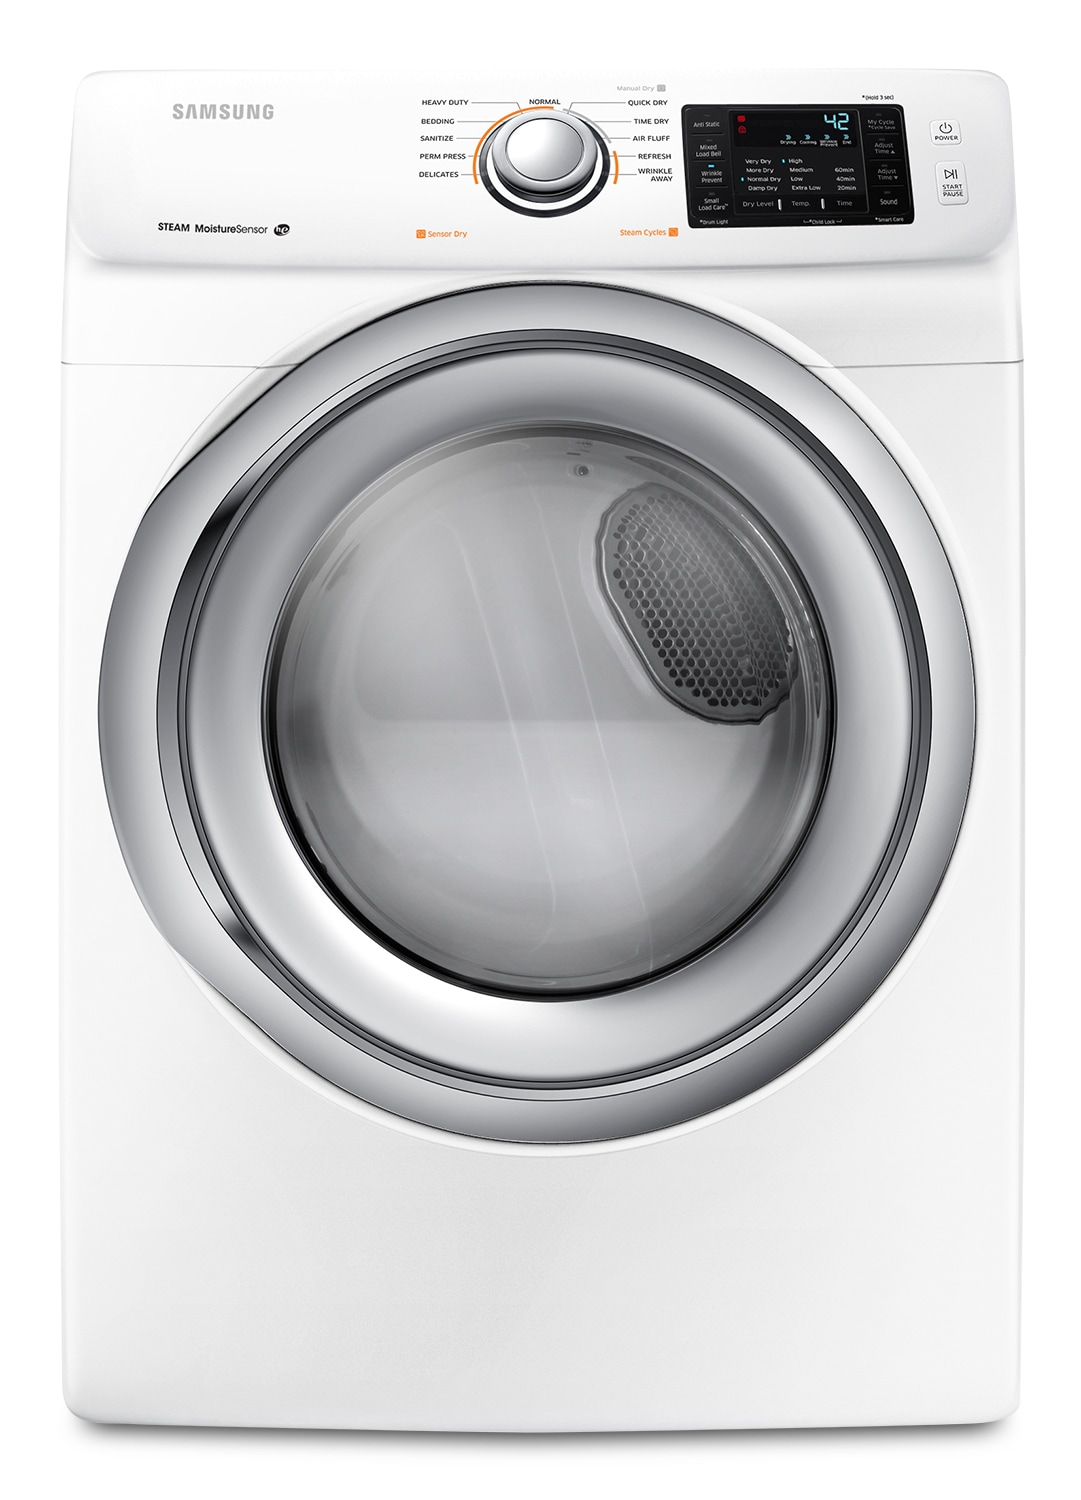 Samsung White Front-Load Dryer - DV42H5200EW